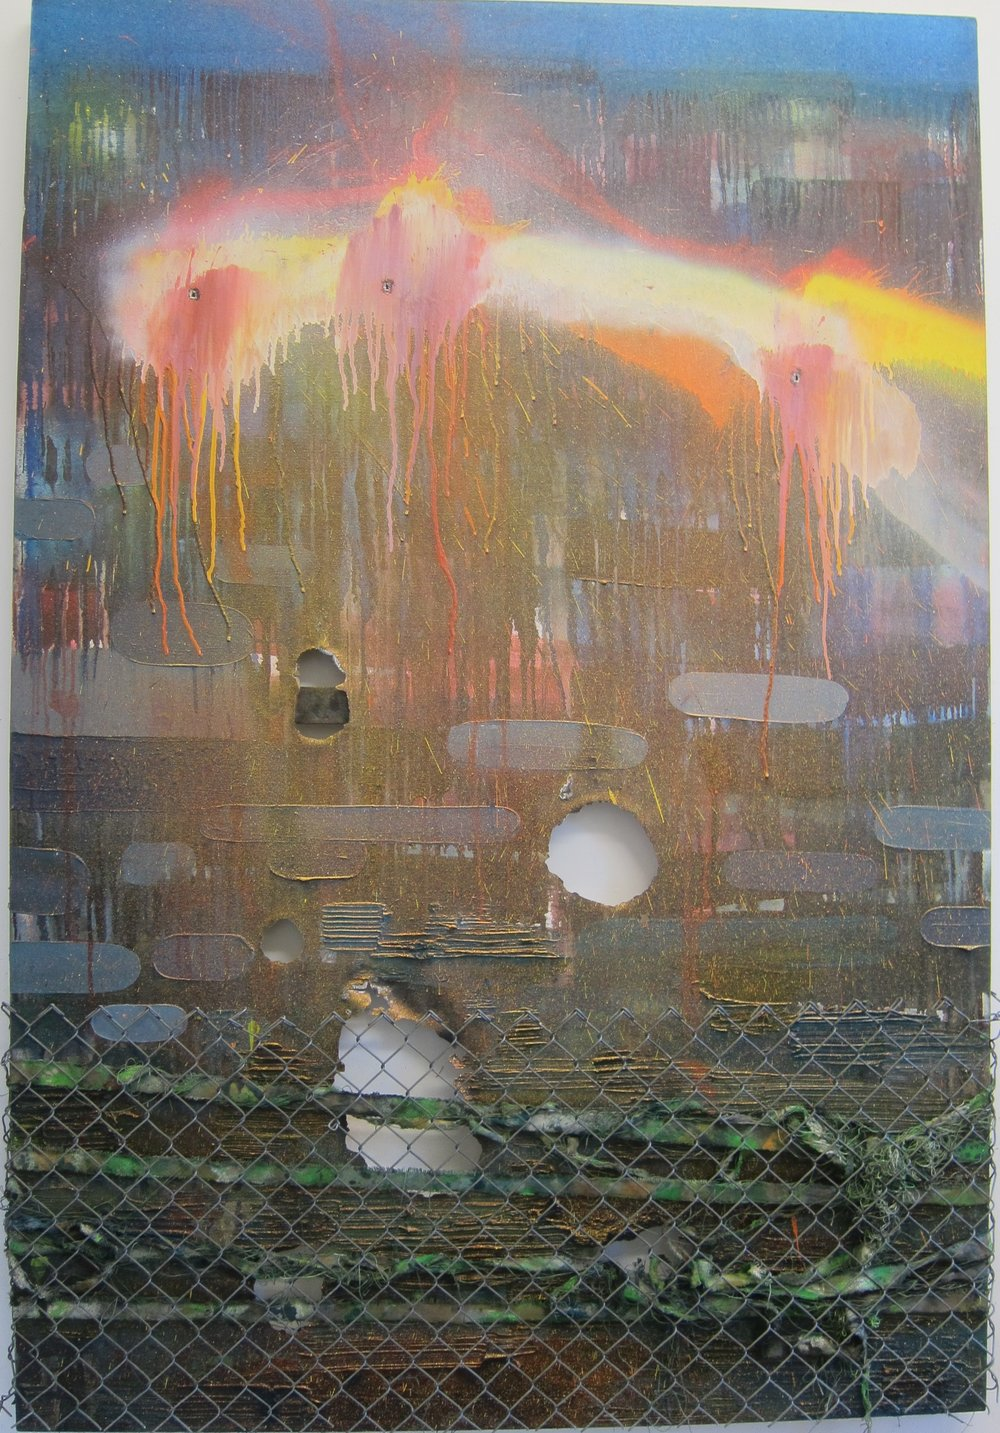 Drunk Guard with a Gun.   Oil, alkyd resin, fire, fence, canvas & shot 3 times with a Marlin Underlever .38 rifle.   170 x 115 cm.   Make Your Mark Gallery, Helsinki, Finland.